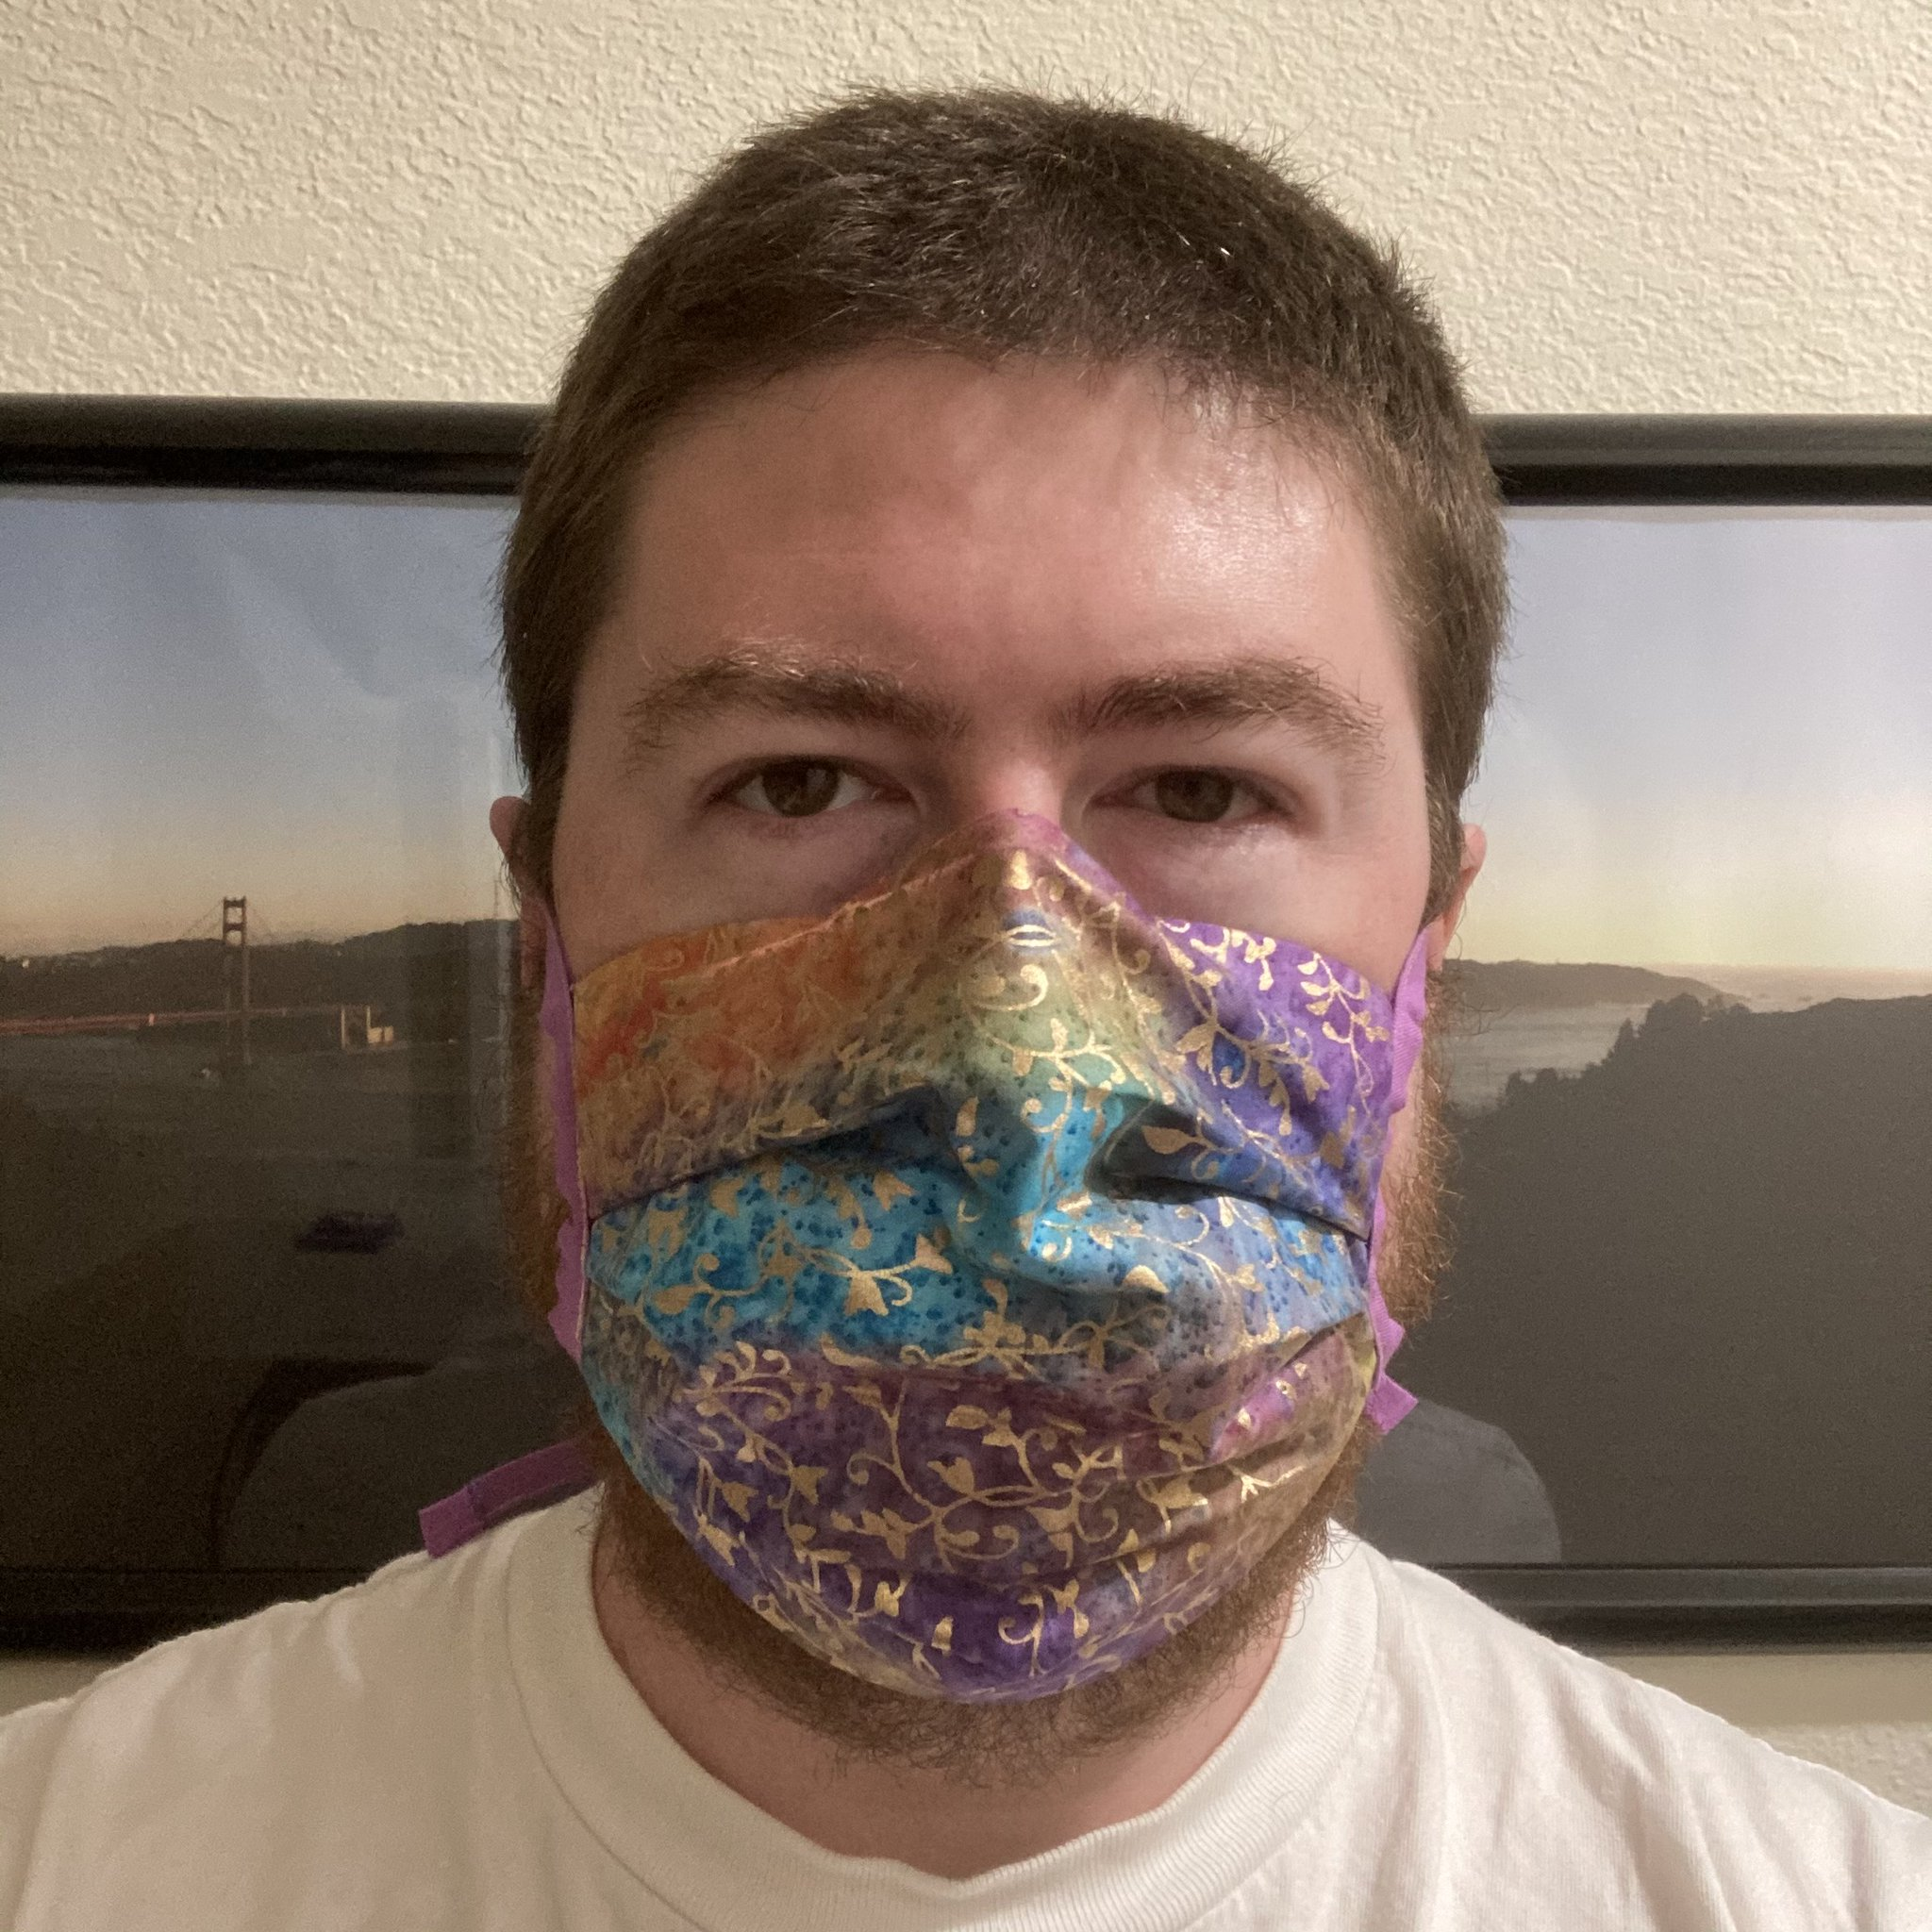 Me wearing a mask with a gold-colored ivy pattern printed on a many-colored batik fabric.